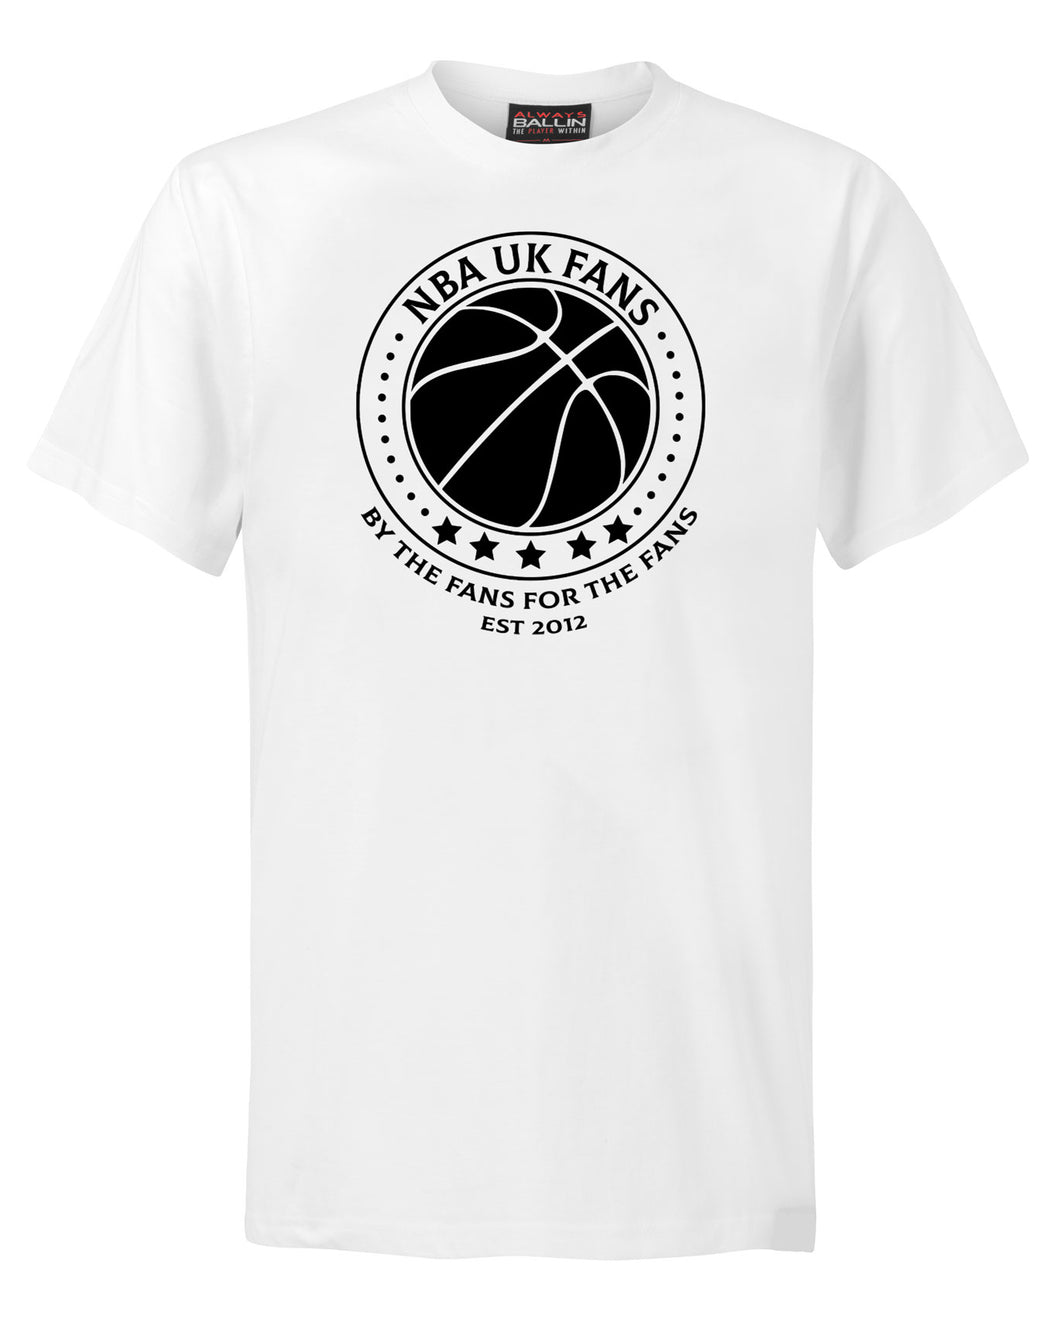 NBA UK Fans Logo White T-Shirt